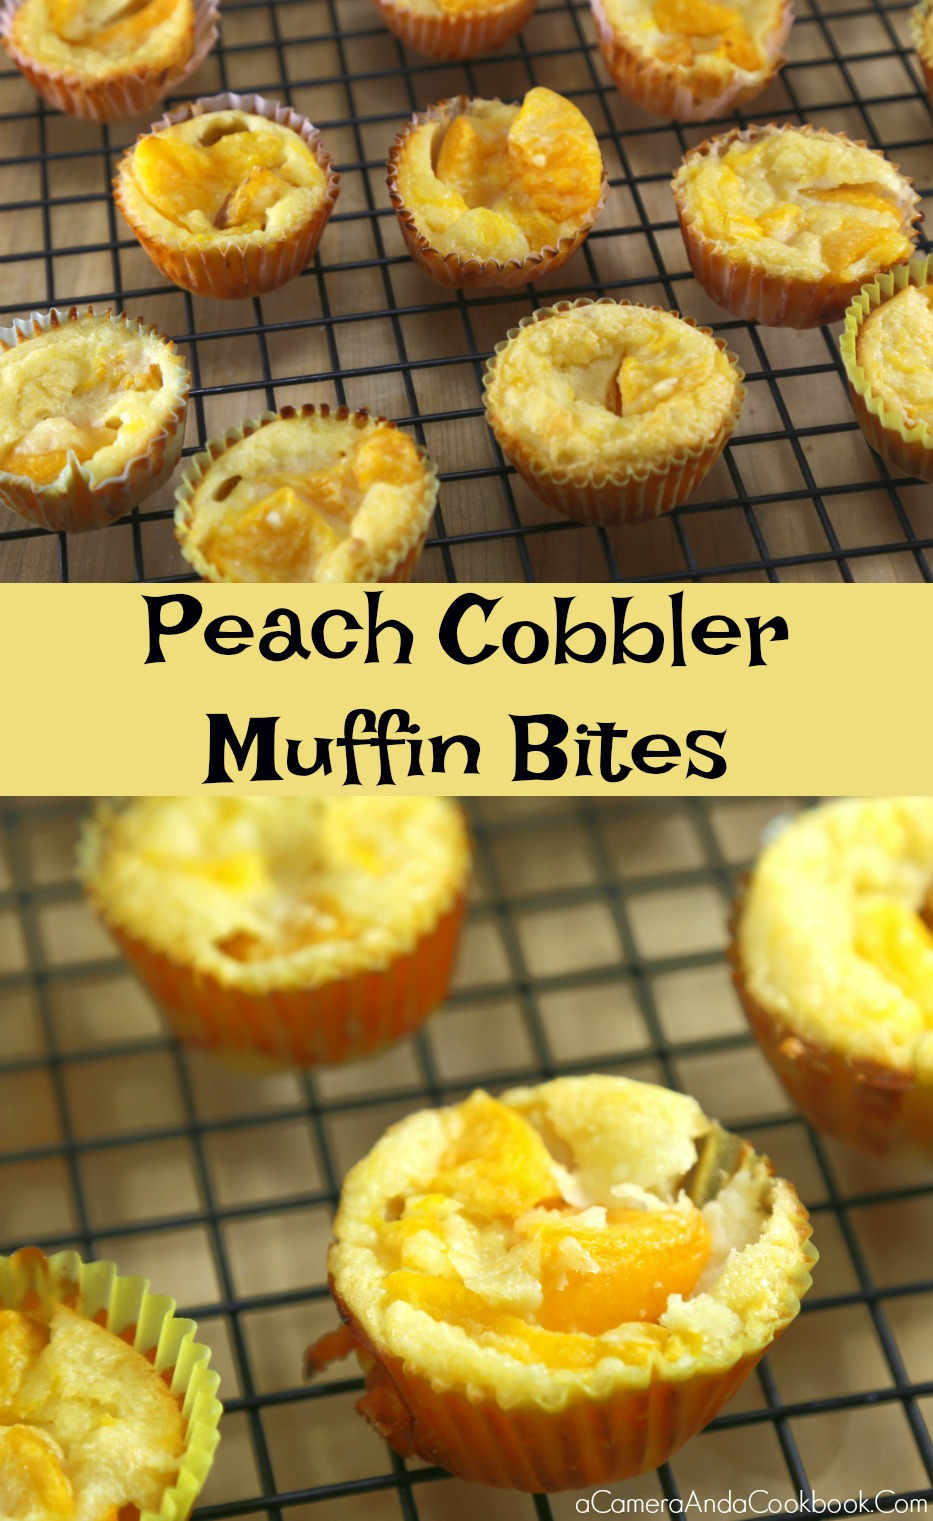 Peach Cobbler Muffin Bites